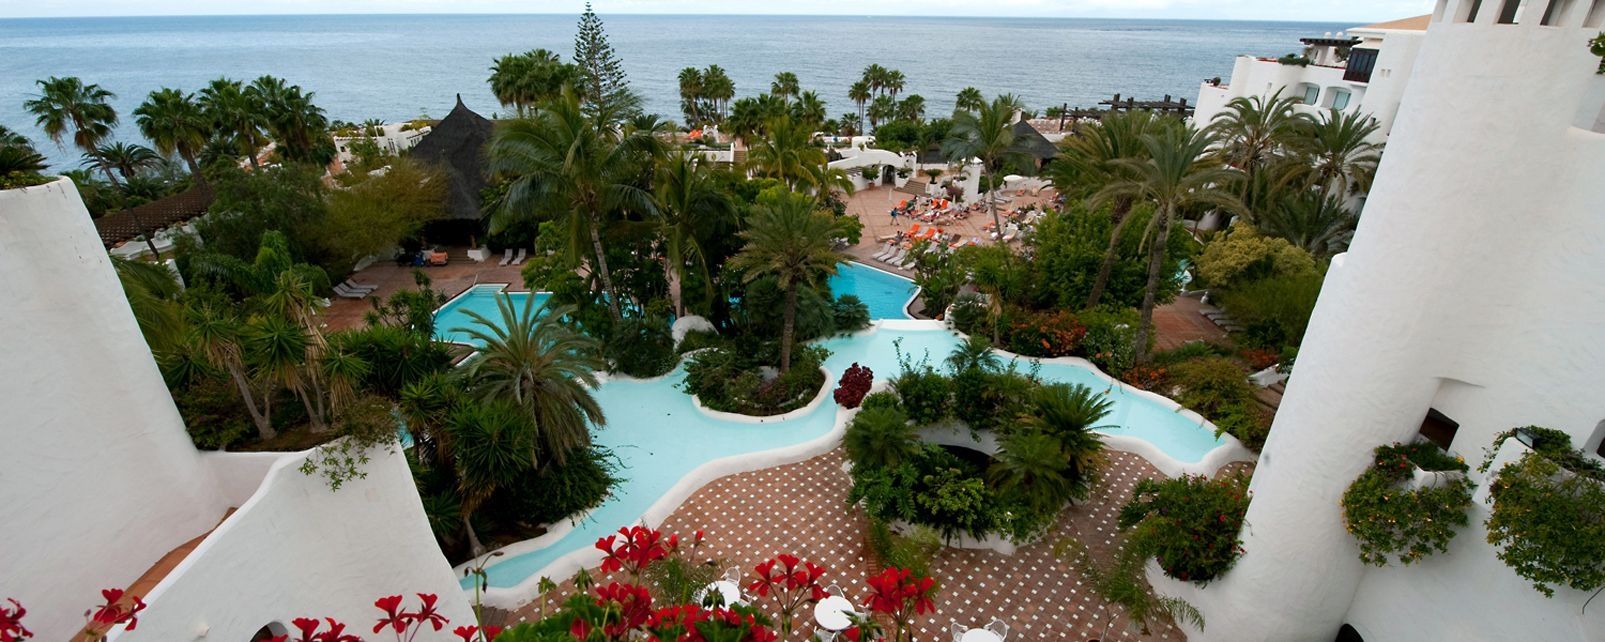 H tel jardin tropical costa adeje espagne for Le jardin tropical tenerife